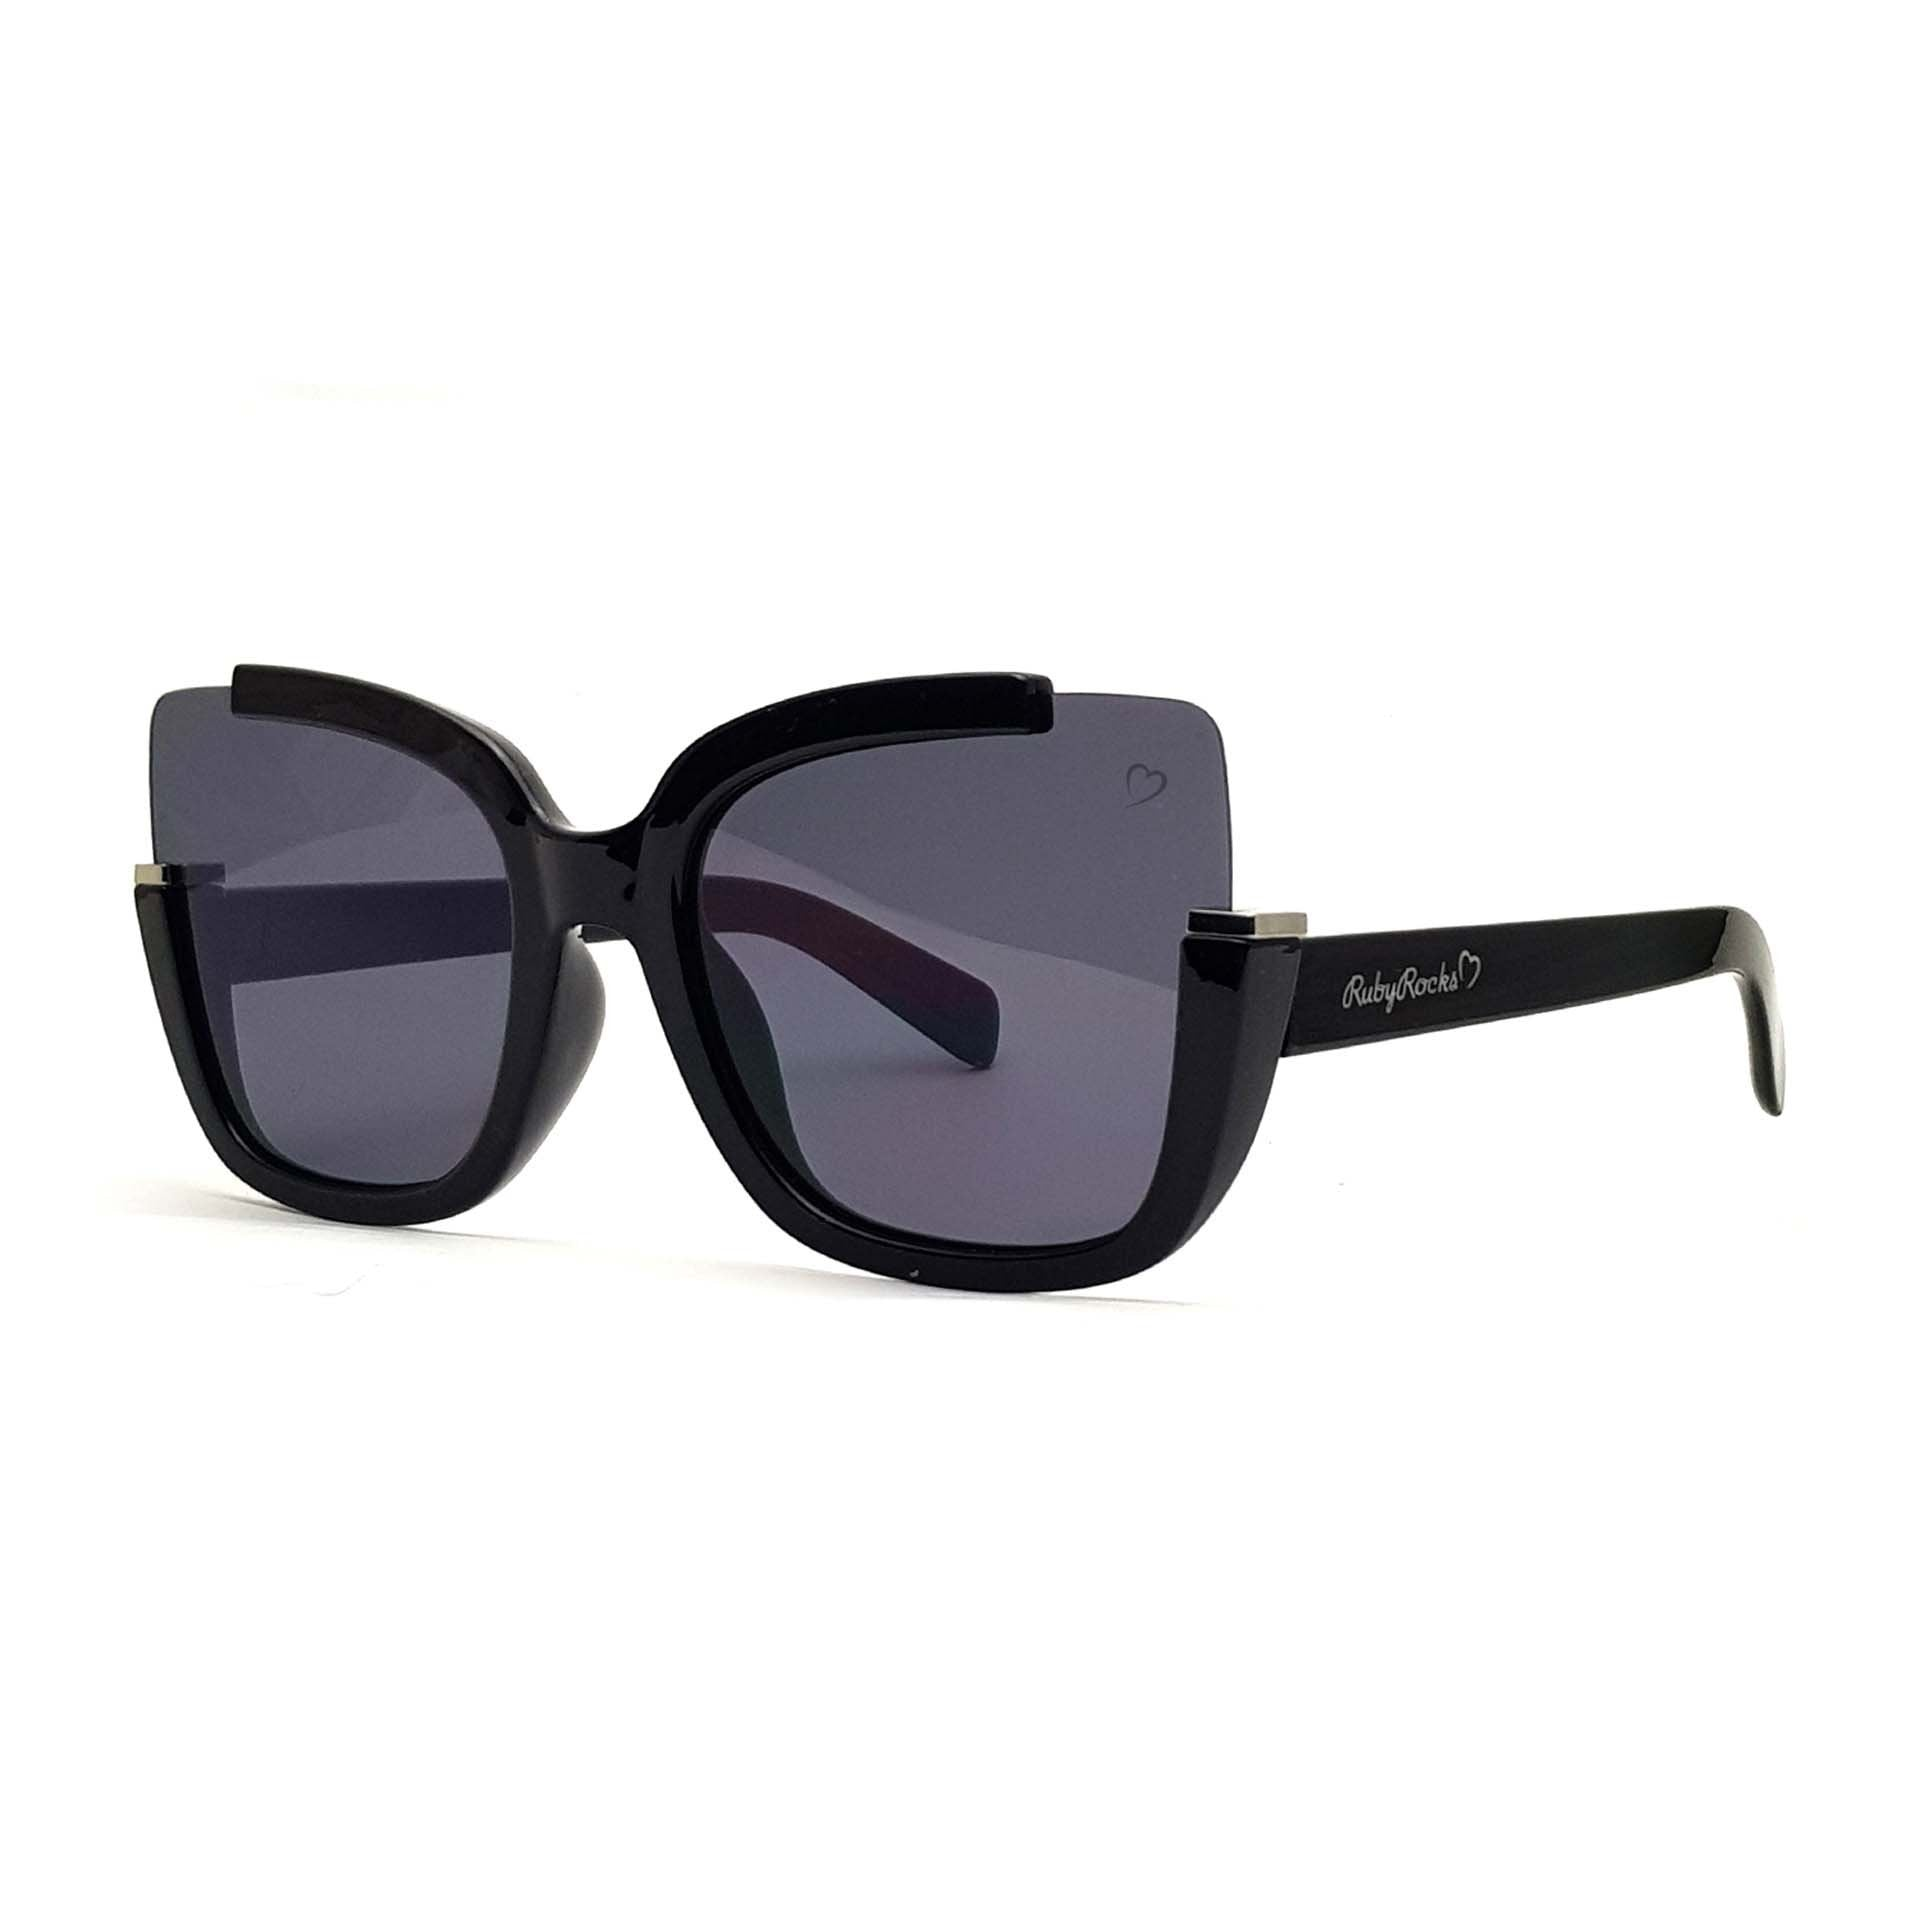 'Elizabeth' Square Sunglasses In Black